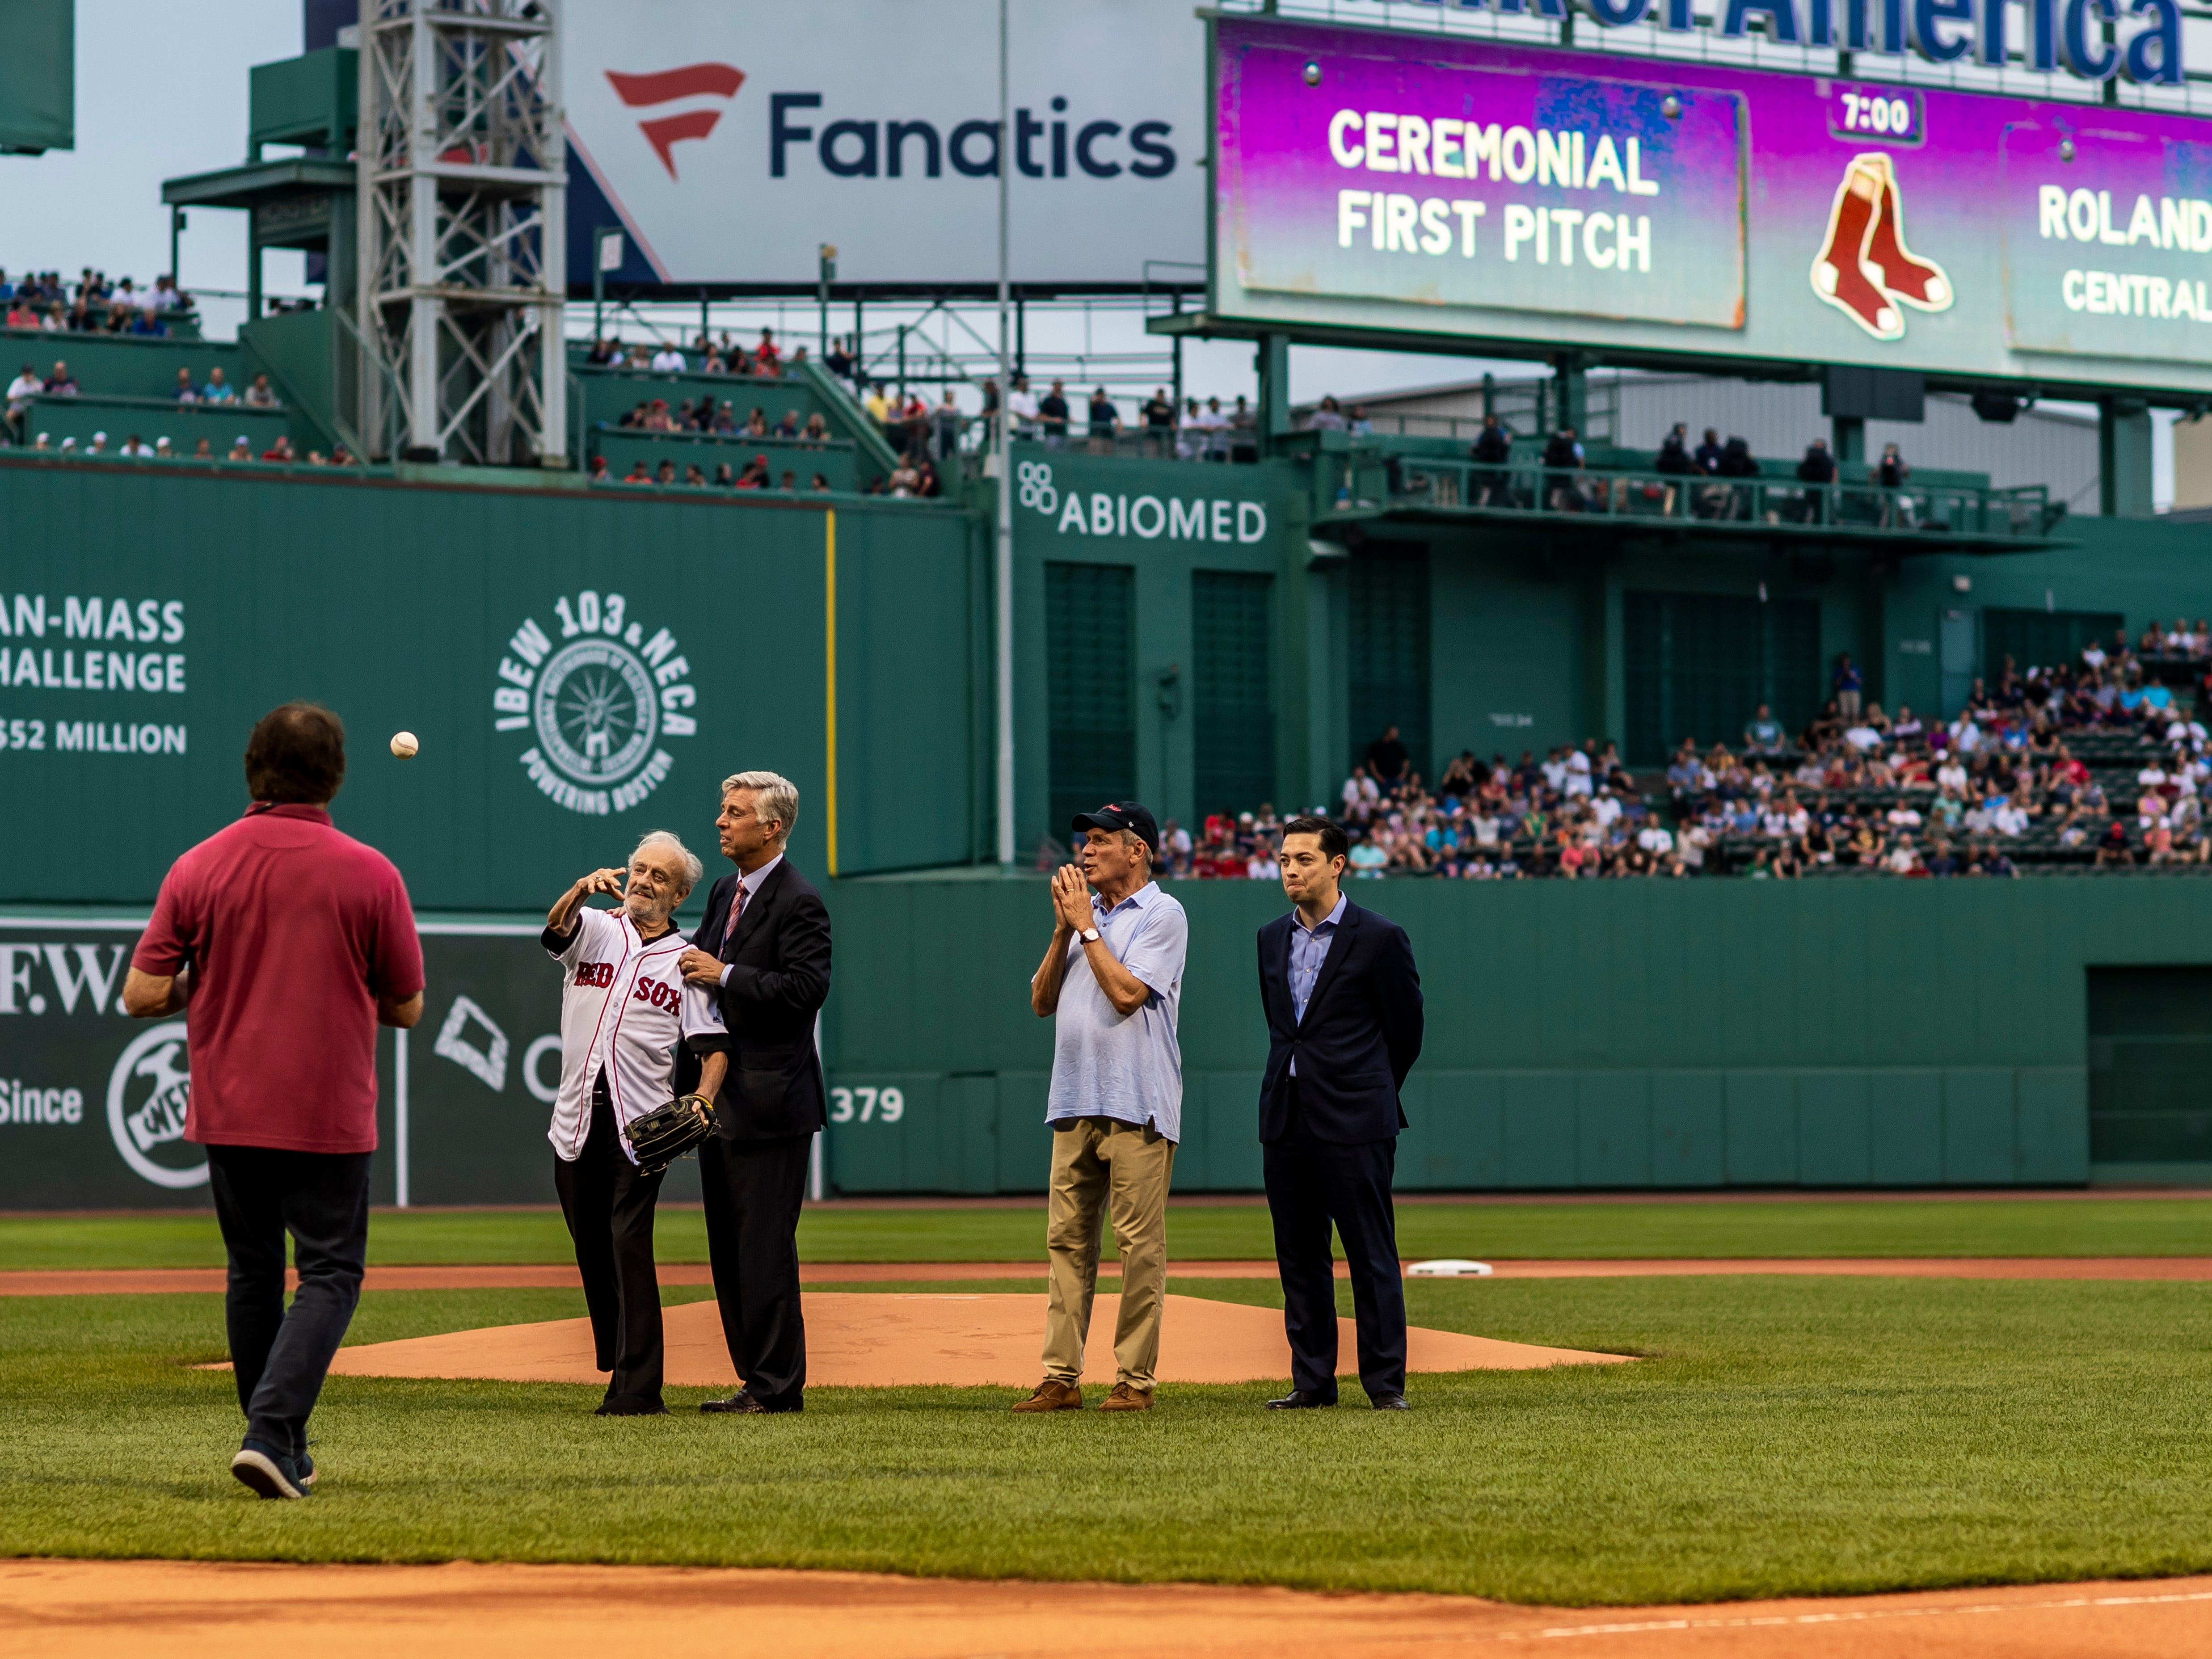 August 2, 2018, Boston, MA: Roland Hemond throws the Ceremonial First Pitch before the Boston Red Sox face the New York Yankees at Fenway Park in Boston, Massachusetts on Thursday, August 2, 2018. (Photo by Matthew Thomas/Boston Red Sox)